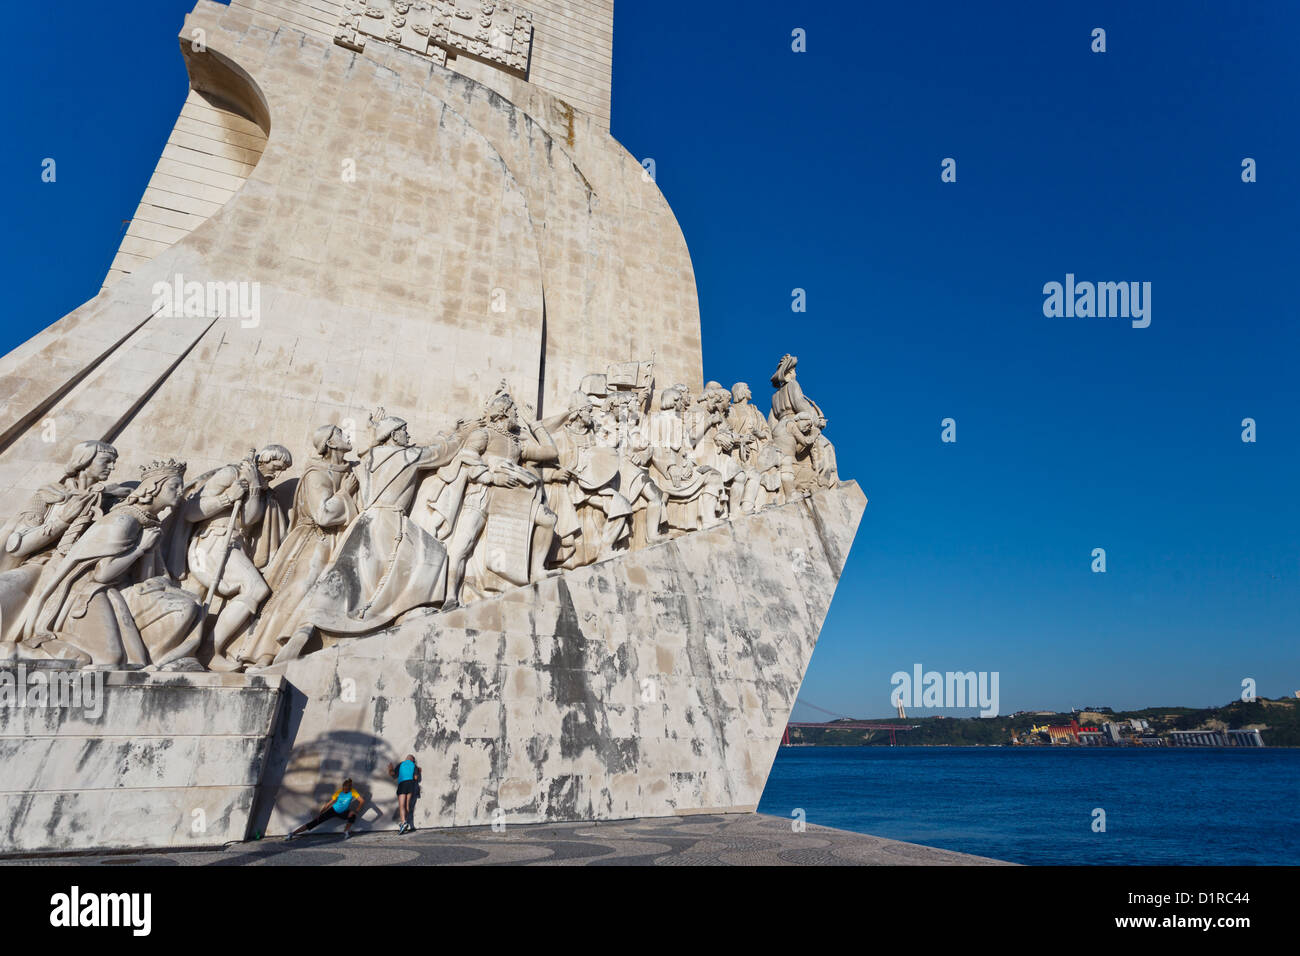 Closeup of the statues of the Monument to Discoveries in Lisbon Harbor honoring Portugal's explorers - Stock Image